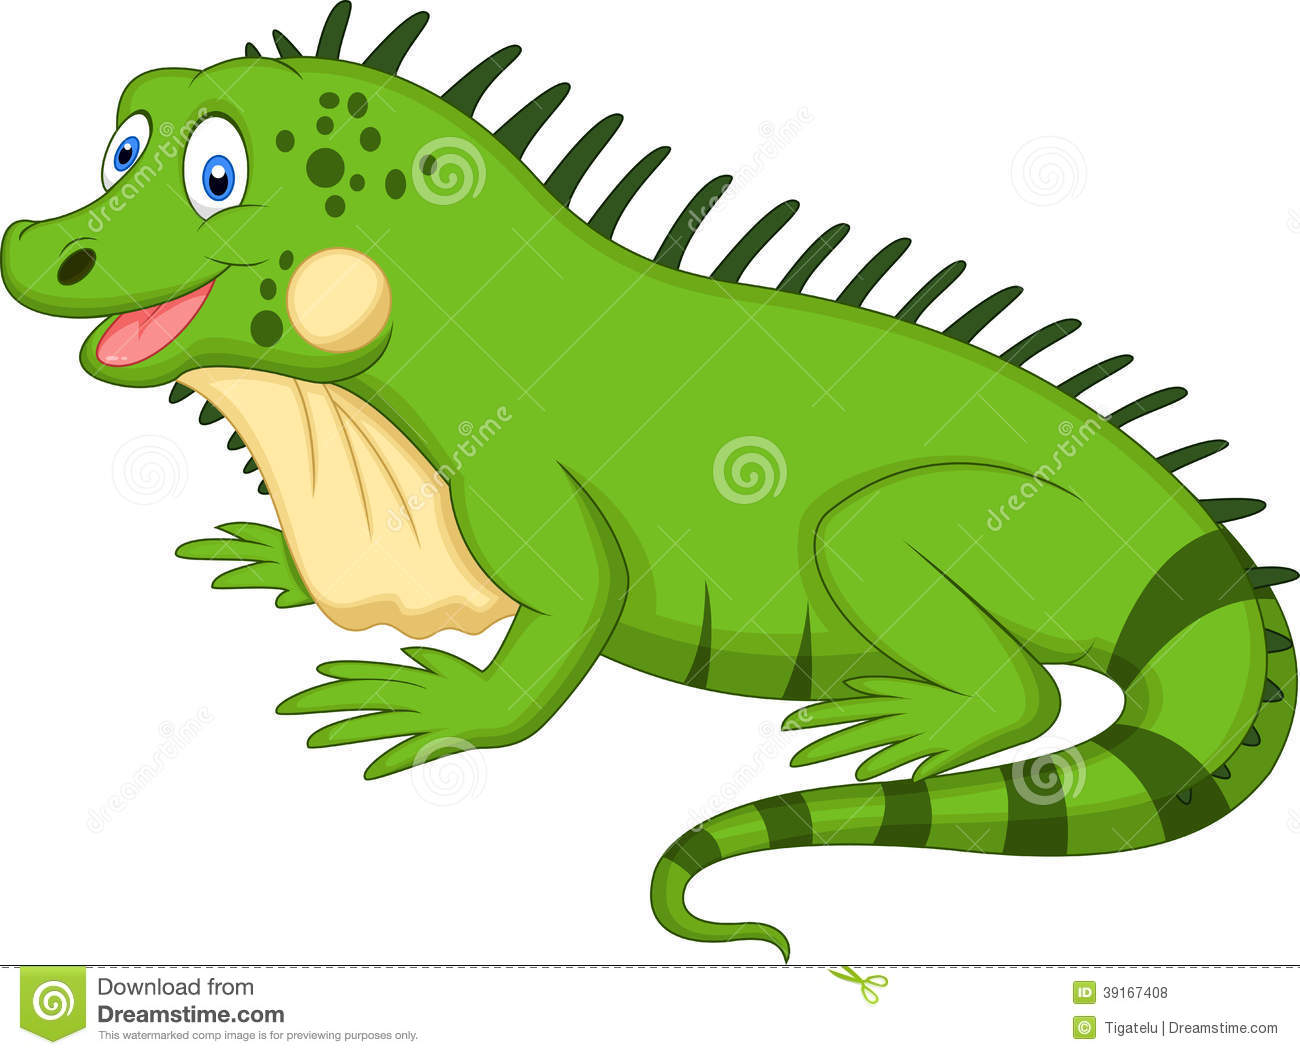 Cute Iguana Cartoon Stock Vector - Image: 39167408